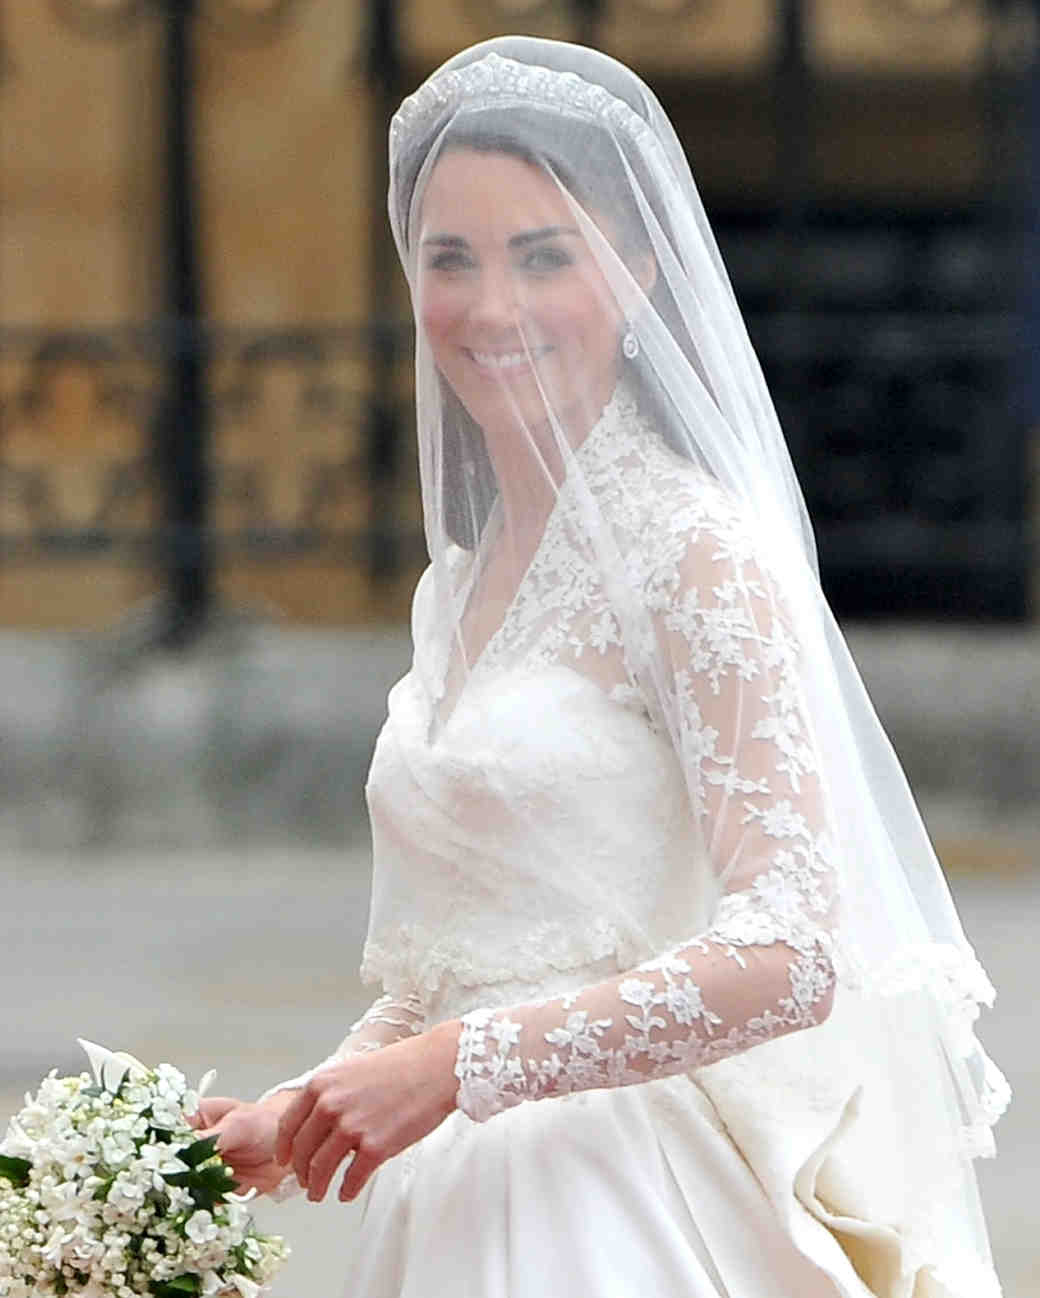 The 15 Best Royal Wedding Dresses of All Time | Martha Stewart Weddings